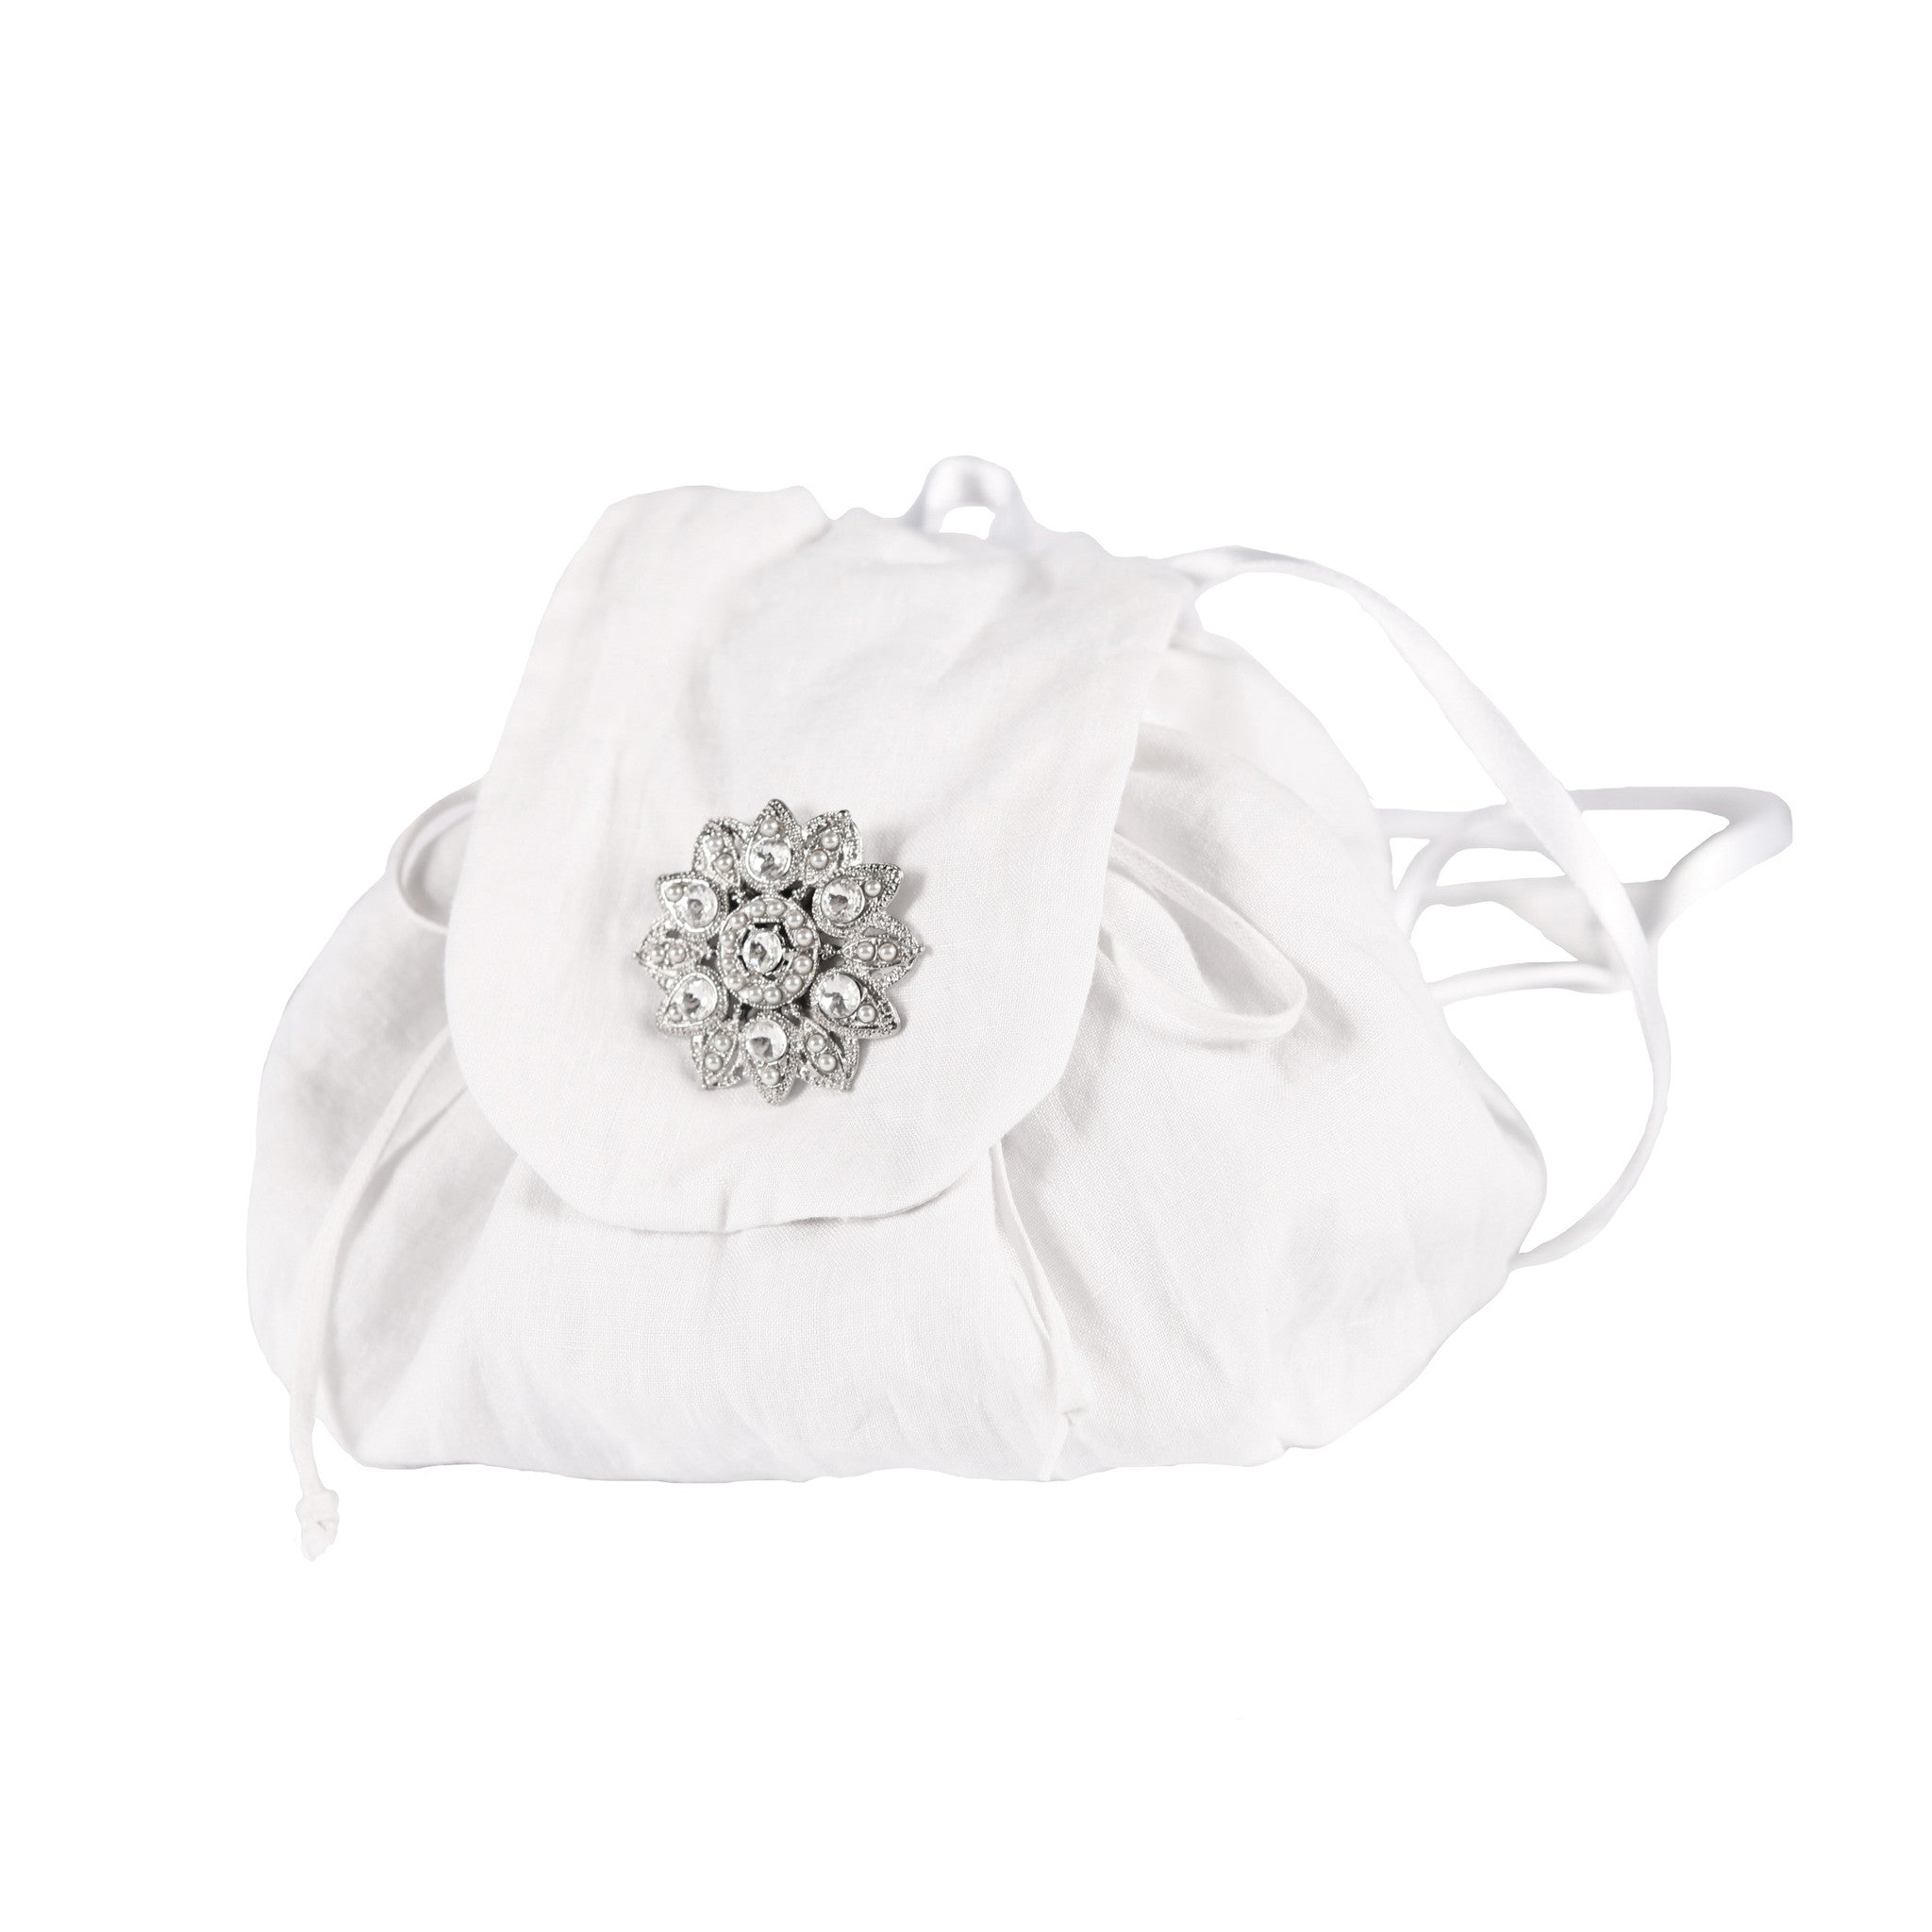 Mini Rucksack Linen White - Jenny M. London  - 1